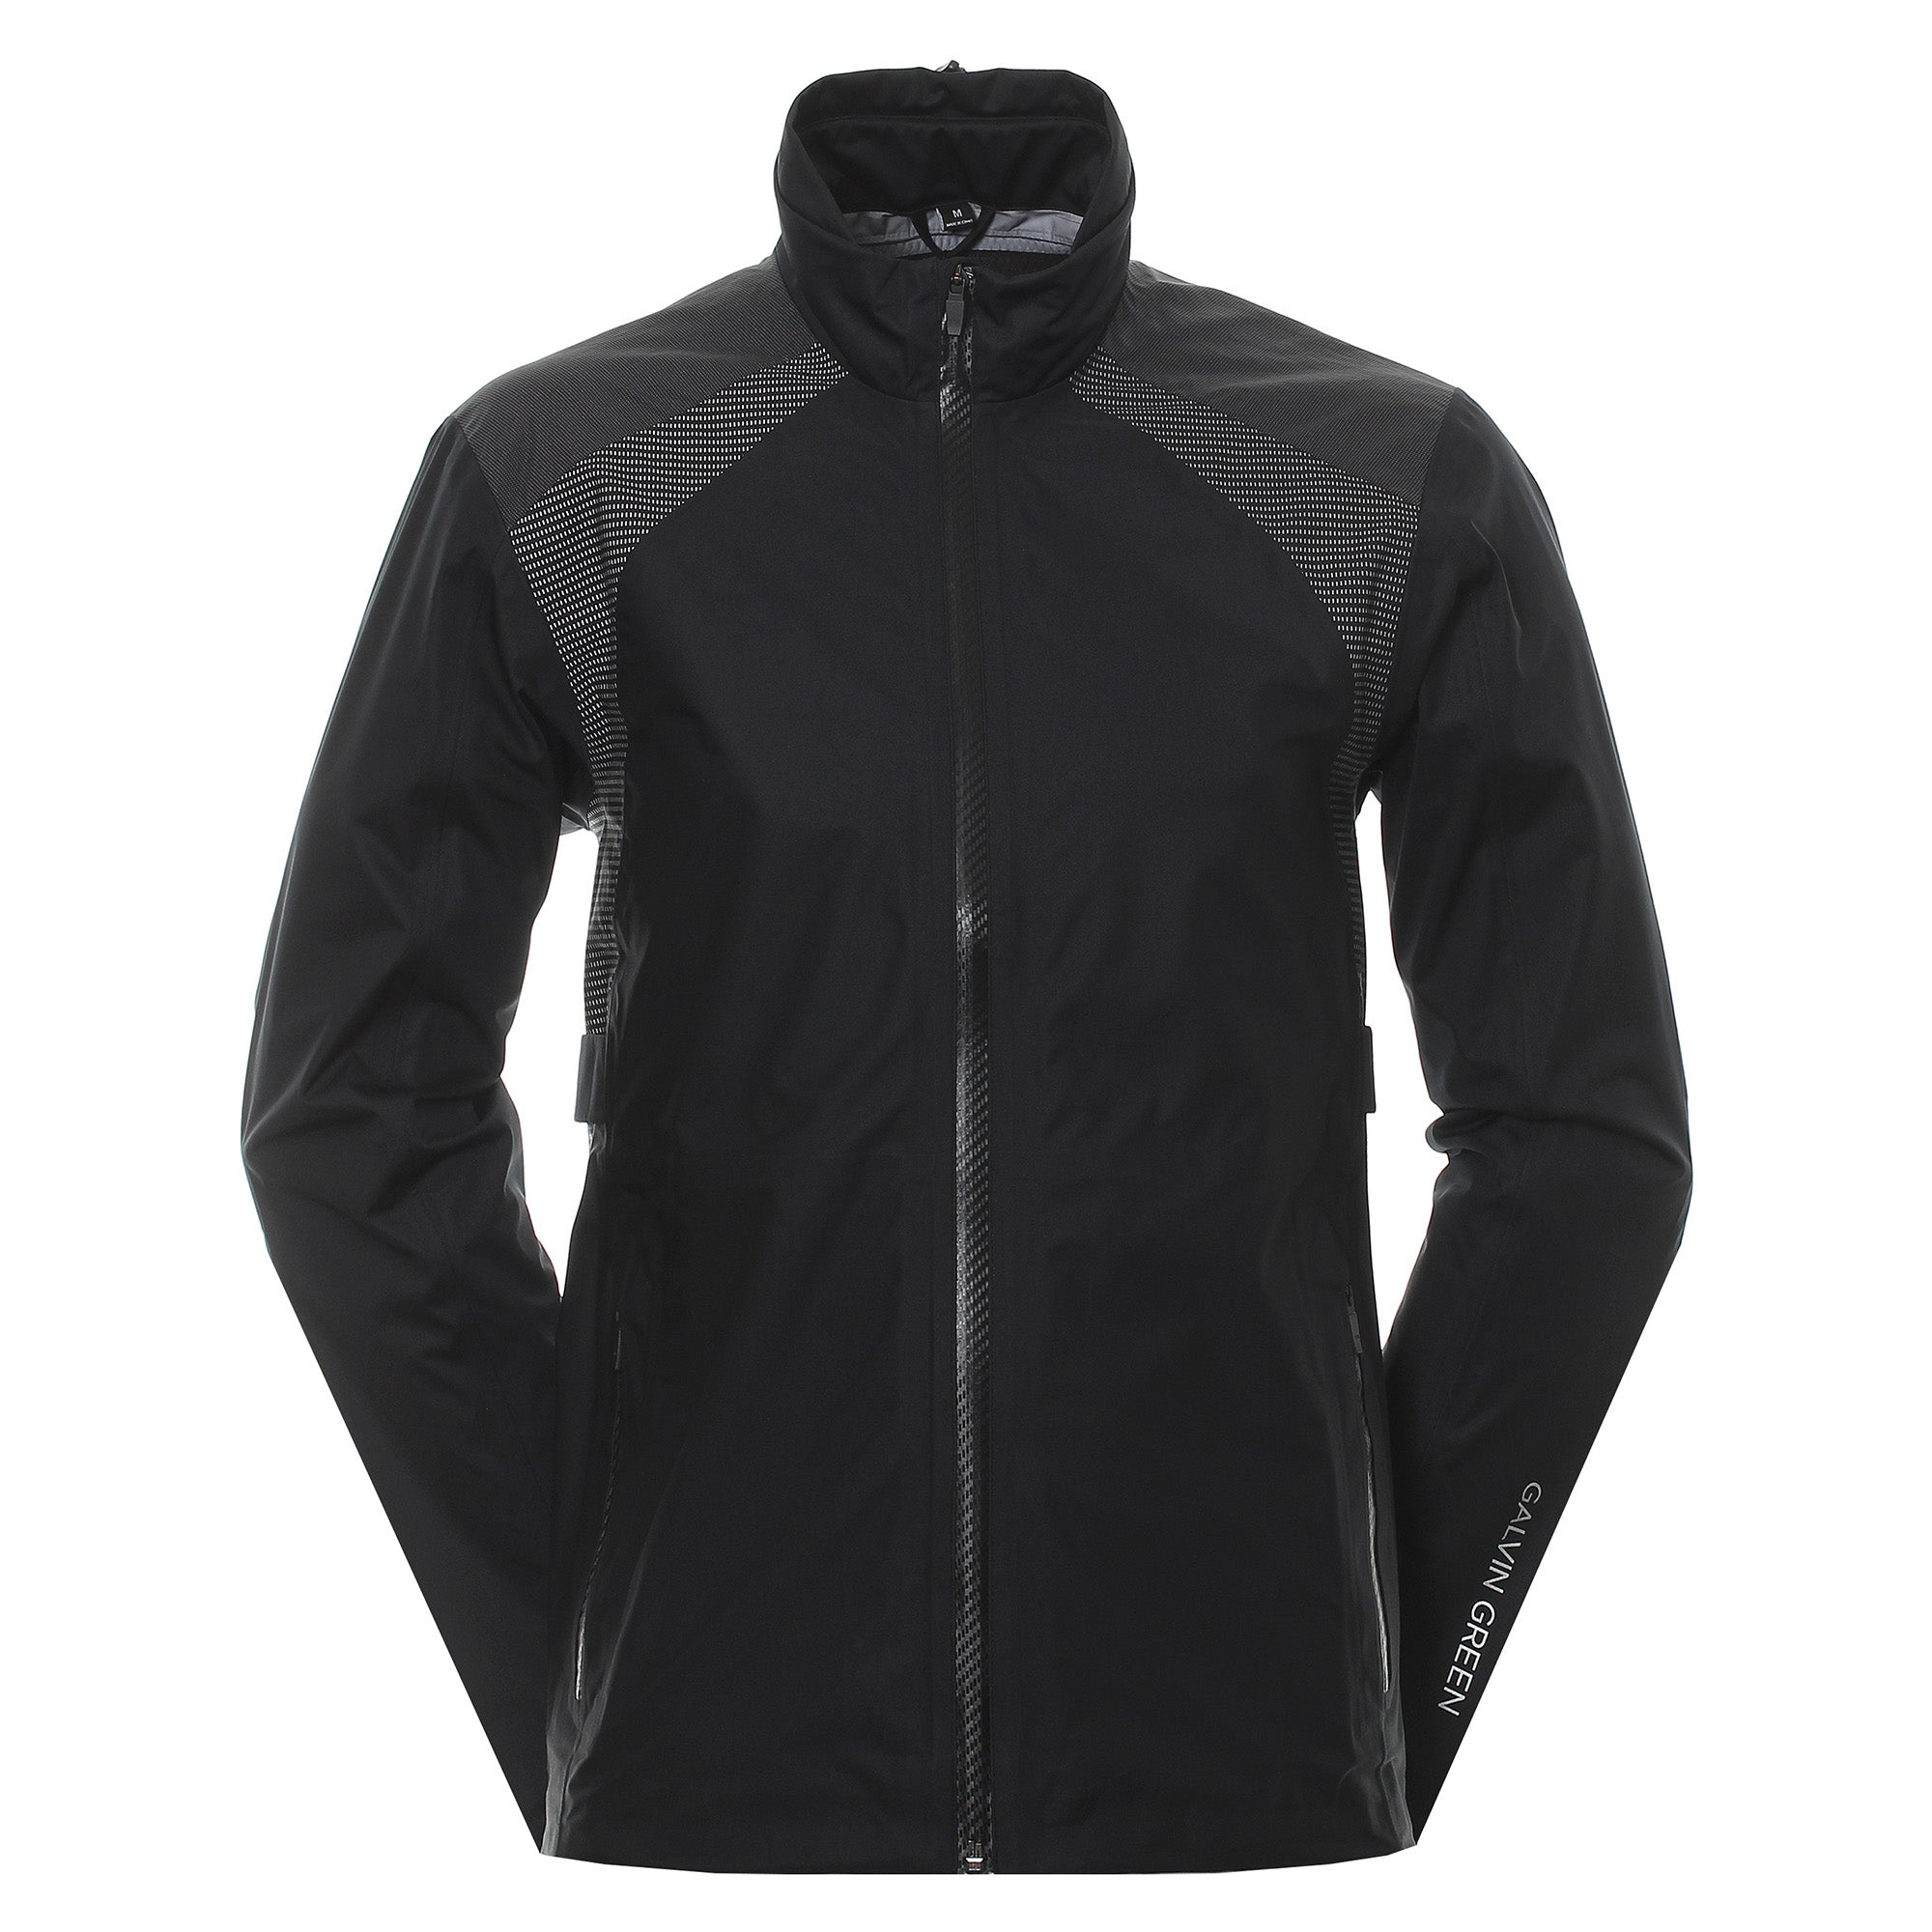 Galvin Green Archie C-Knit Gore-Tex Waterproof Jacket